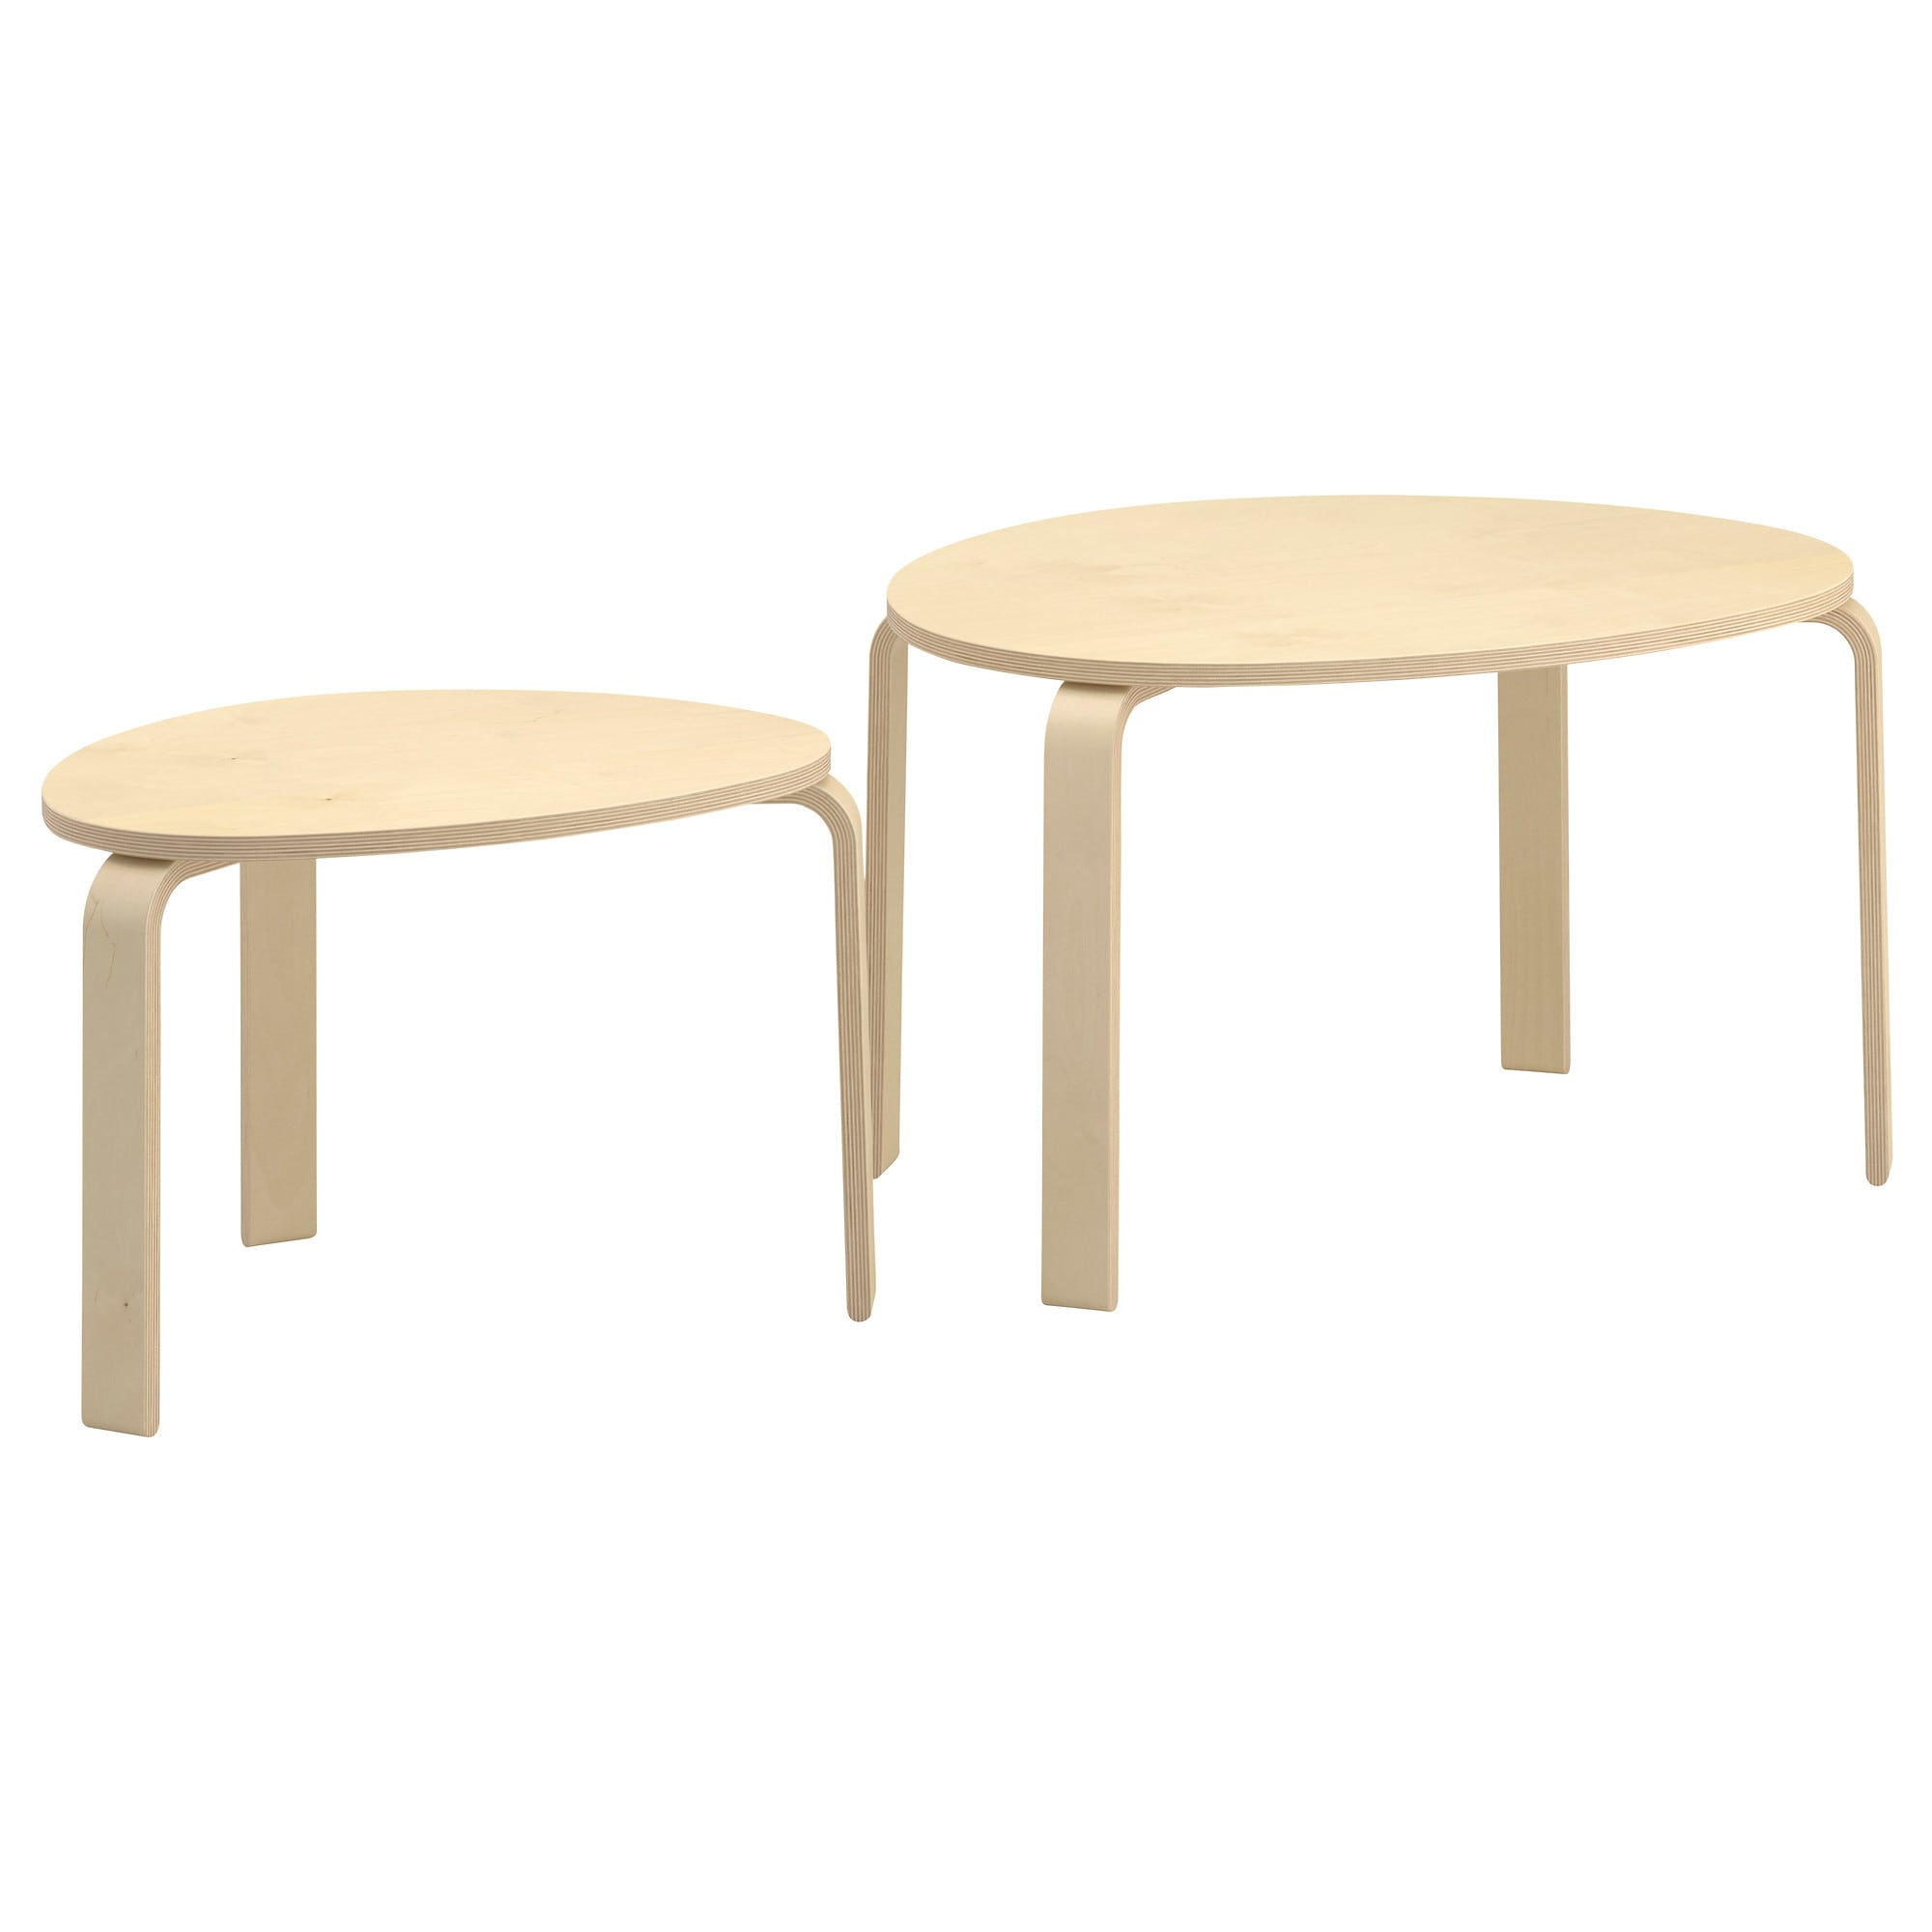 Svalsta Nest Of Tables, Set Of 2 Birch Veneer – Ikea With Most Recent Set Of Nesting Coffee Tables (View 15 of 20)